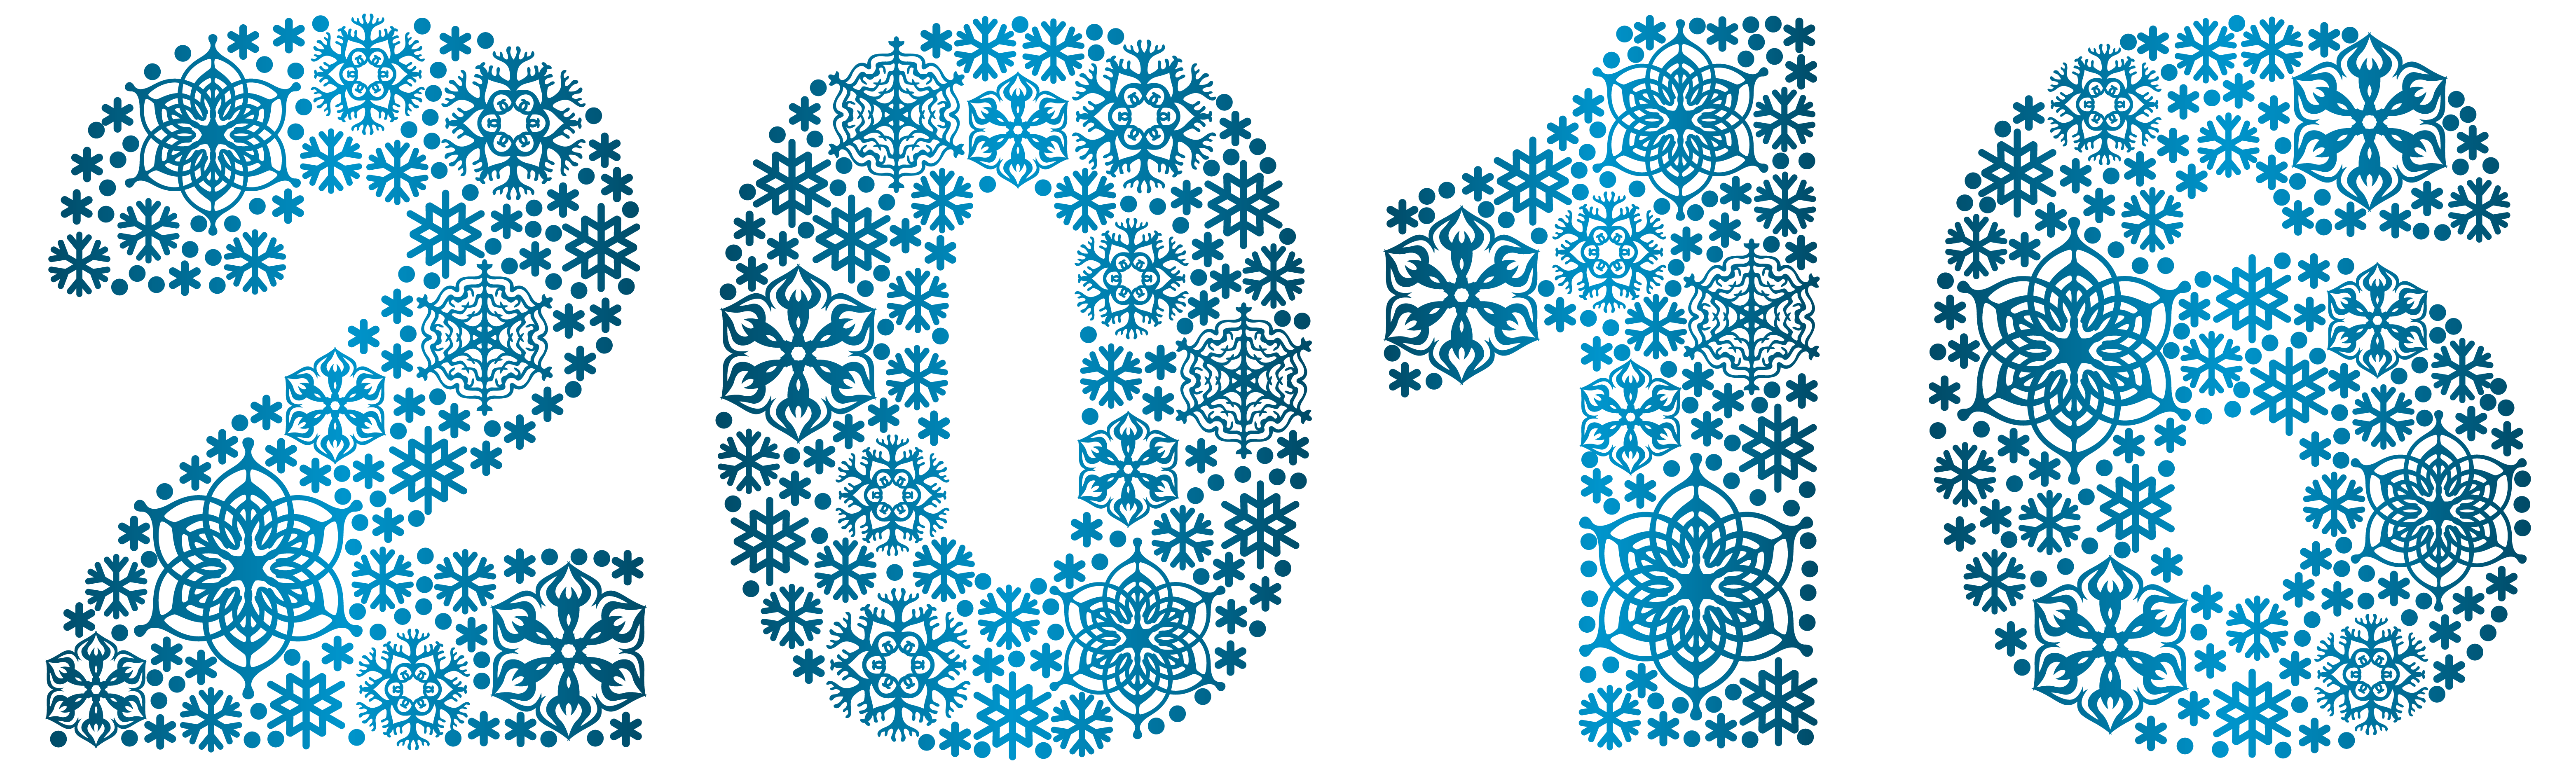 2016 Snowflakes Style PNG Clipart Image.